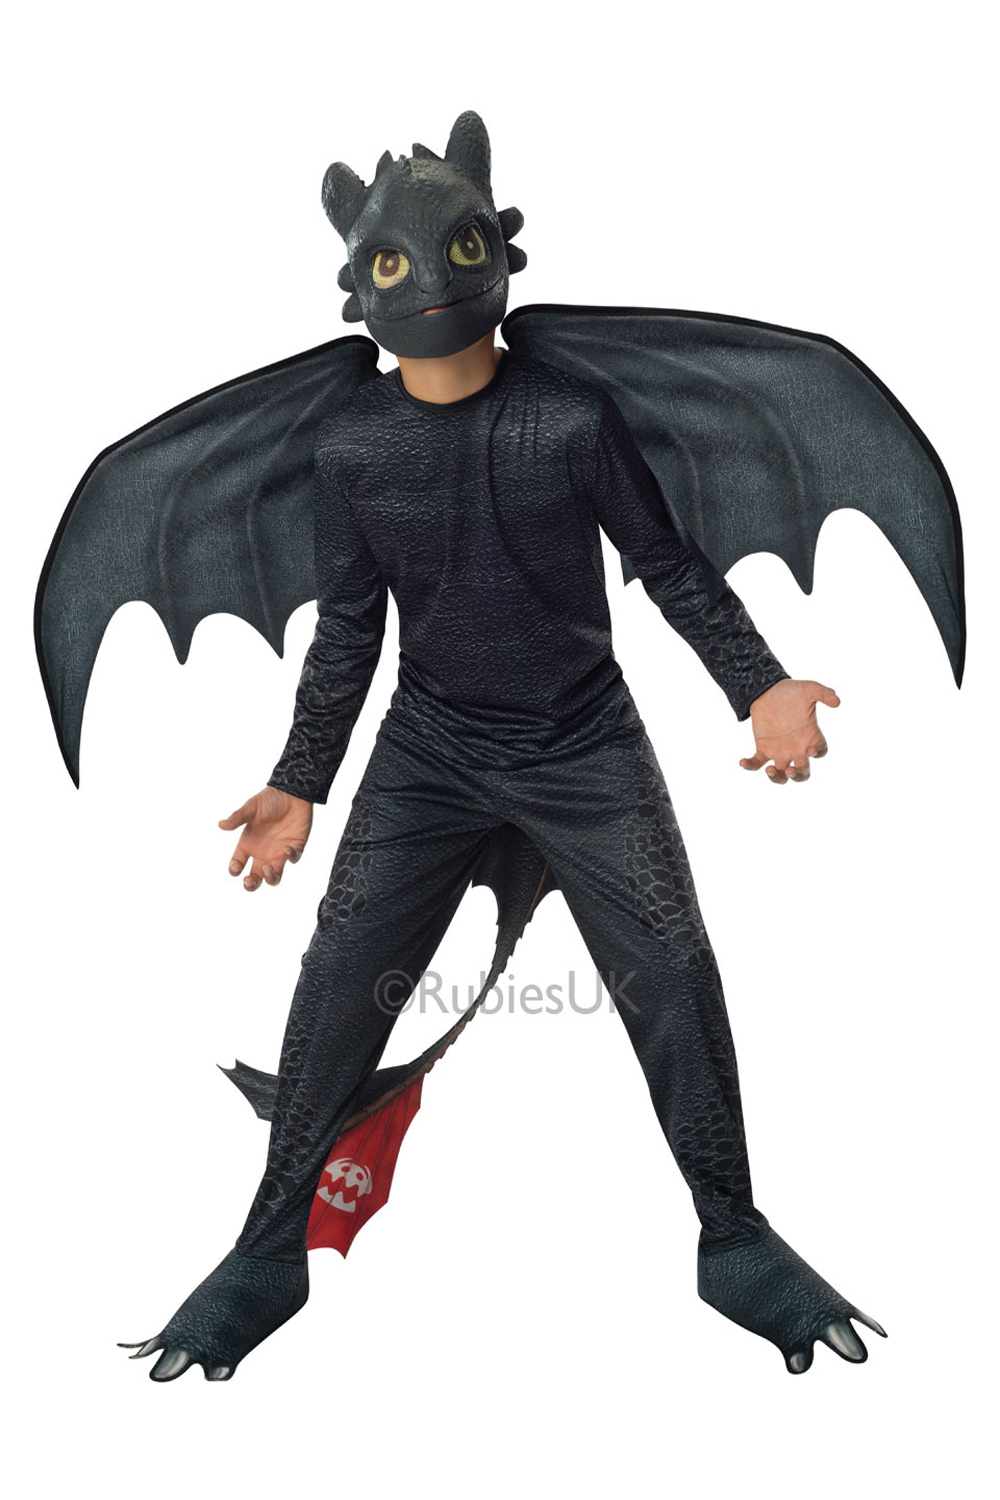 Childrens Toothless Night Fury Rubies Train Your Dragon 2 ...